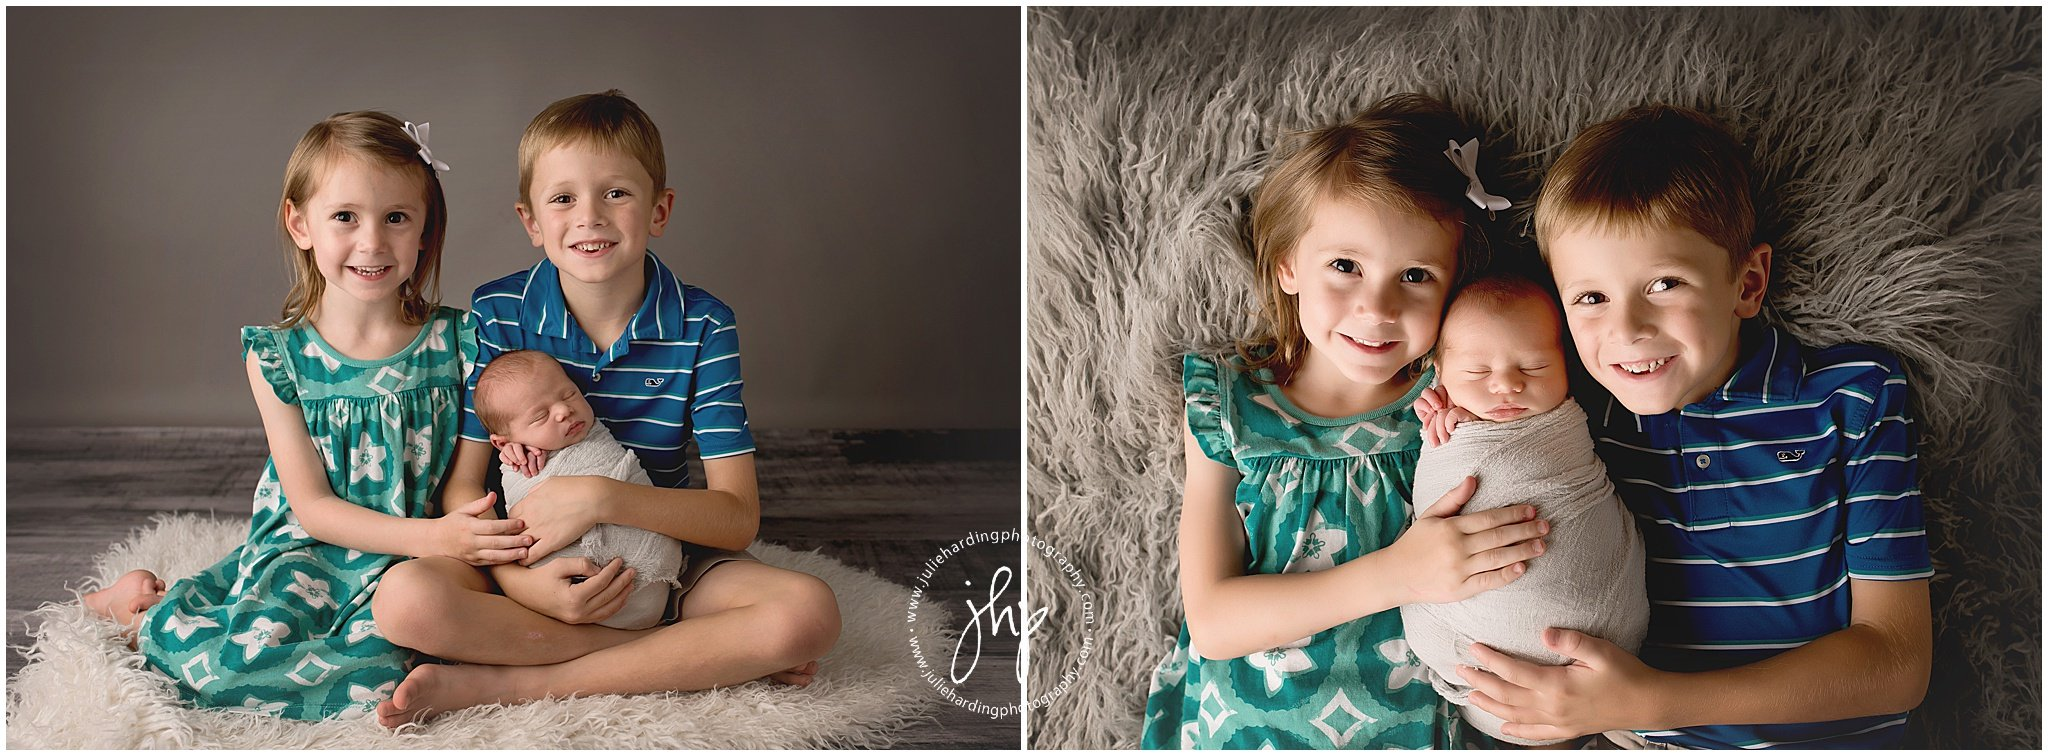 Fort Worth Studio Newborn Session with Siblings